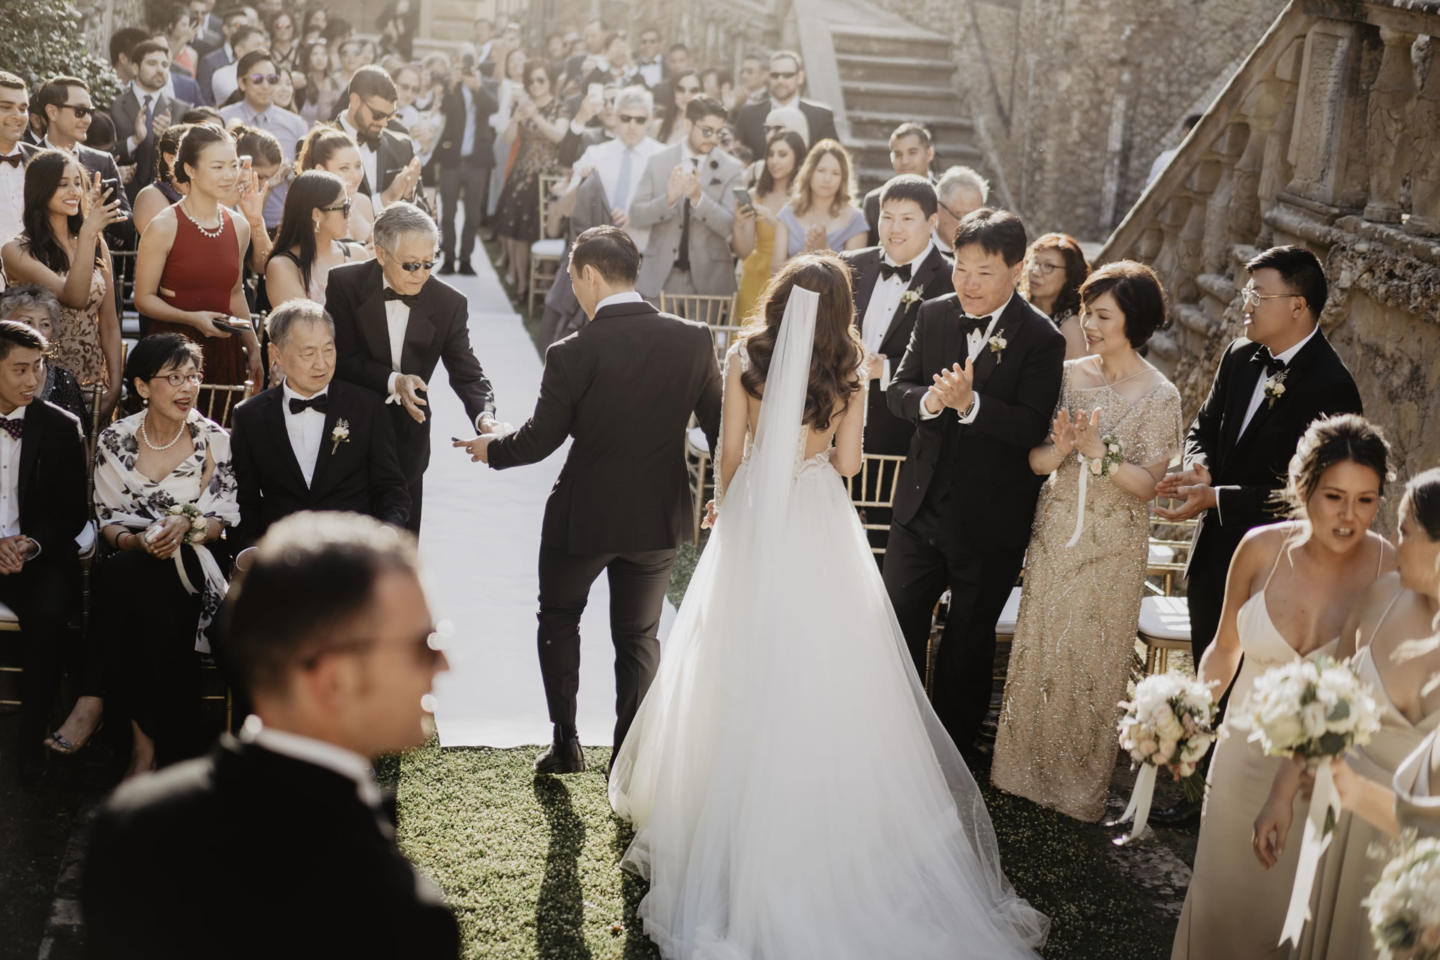 - 33 :: From Los angeles to Florence: a glamour asiatic wedding :: Luxury wedding photography - 32 ::  - 33